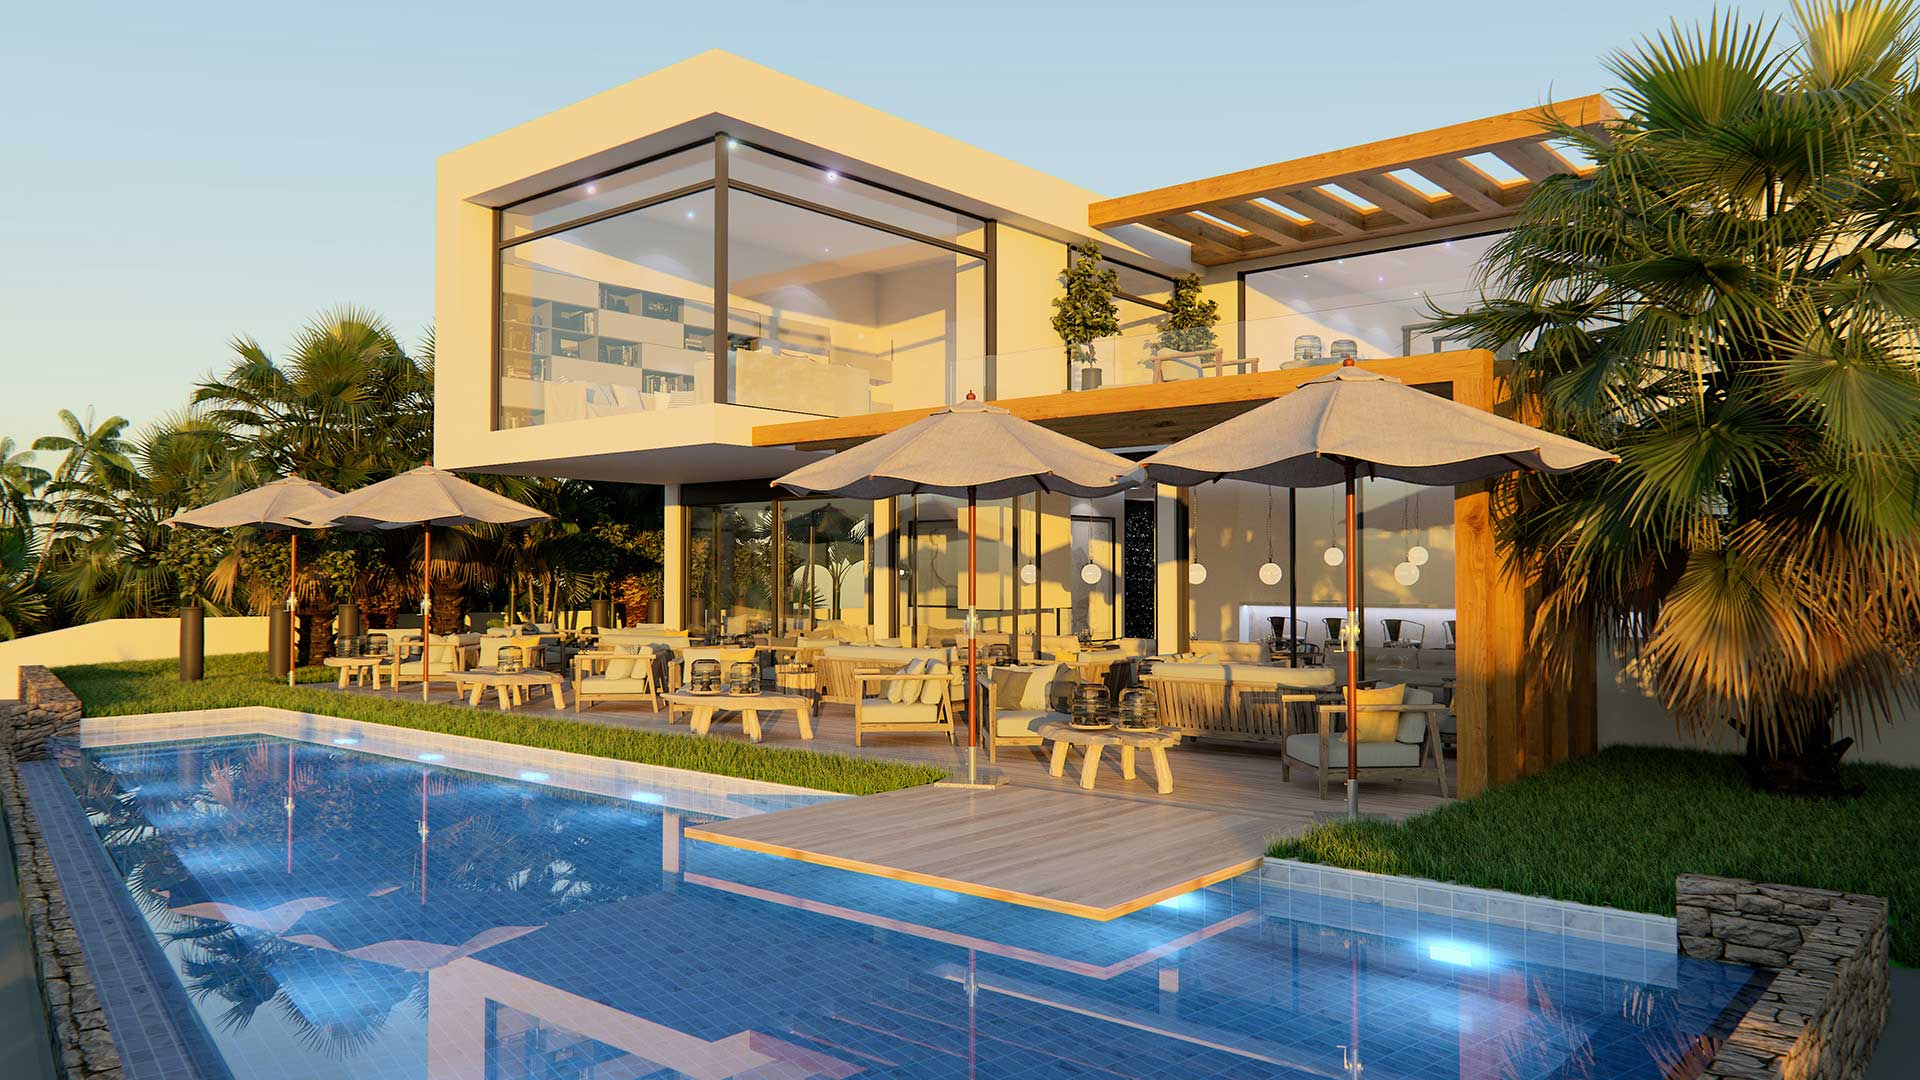 Real estate promotion of a Hotel in Marbella. Computer generated image, 3D Graphics design